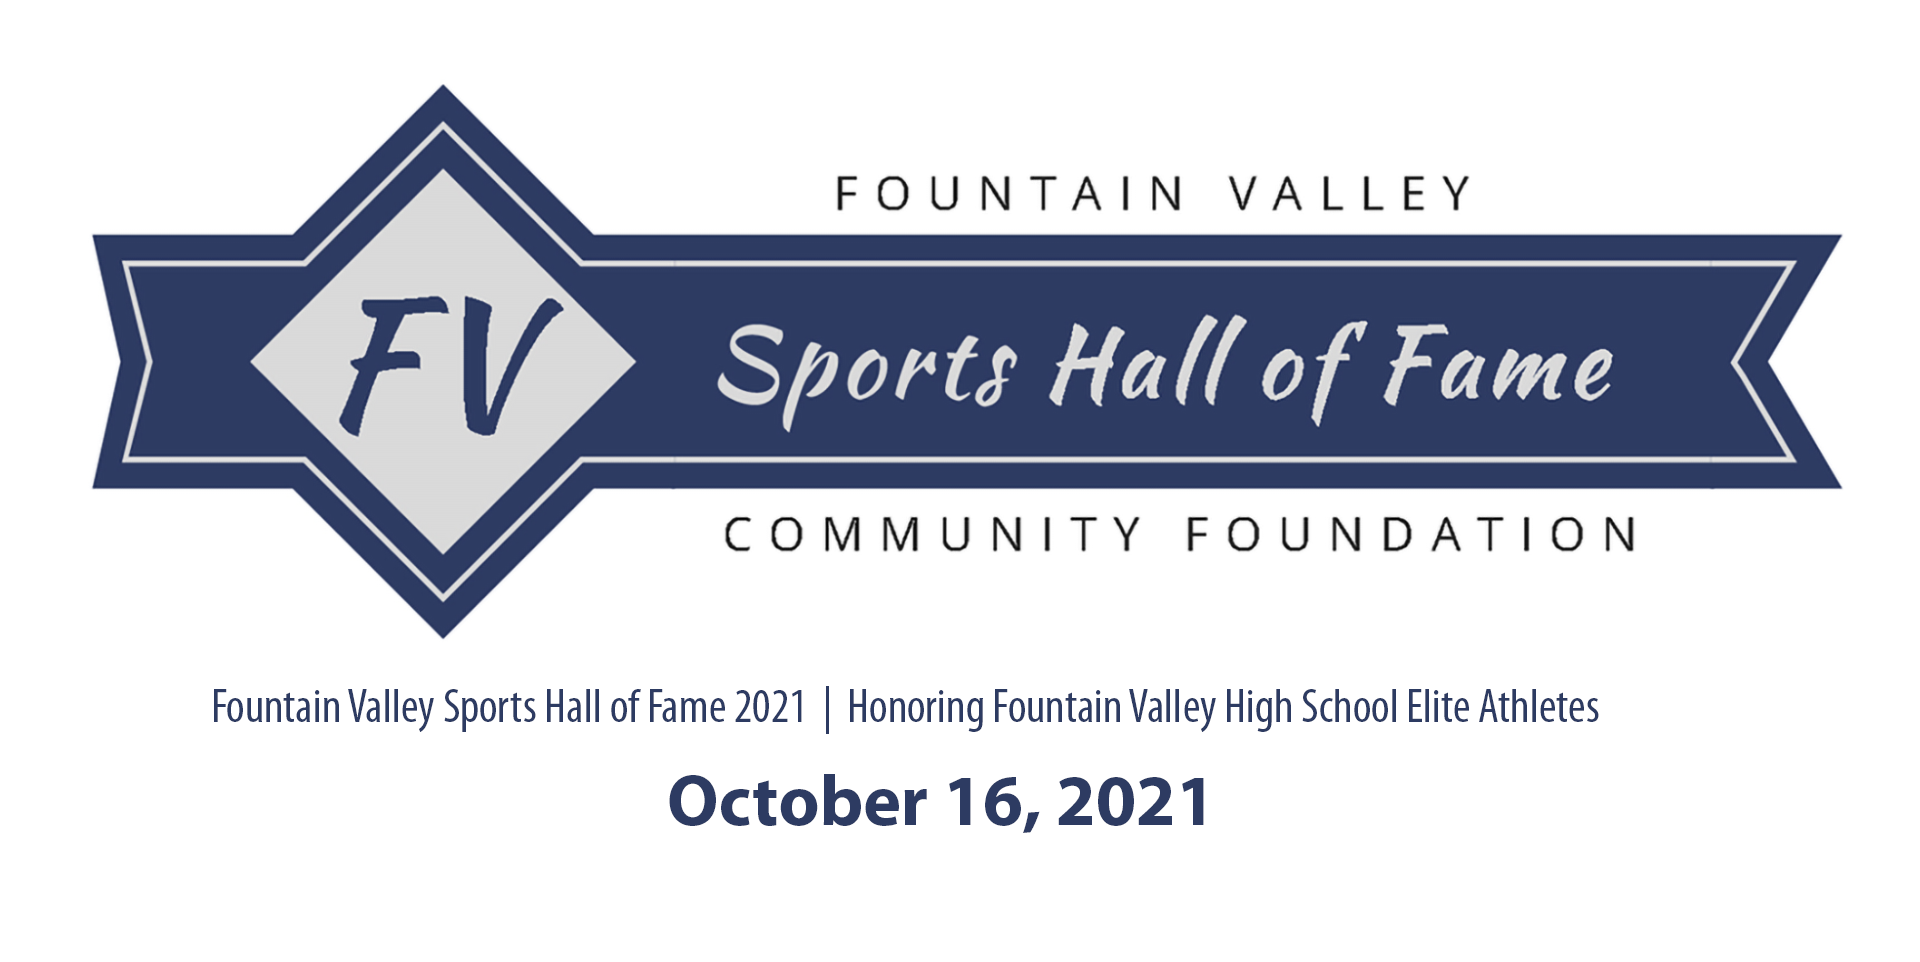 Fountain Valley Sports Hall of Fame